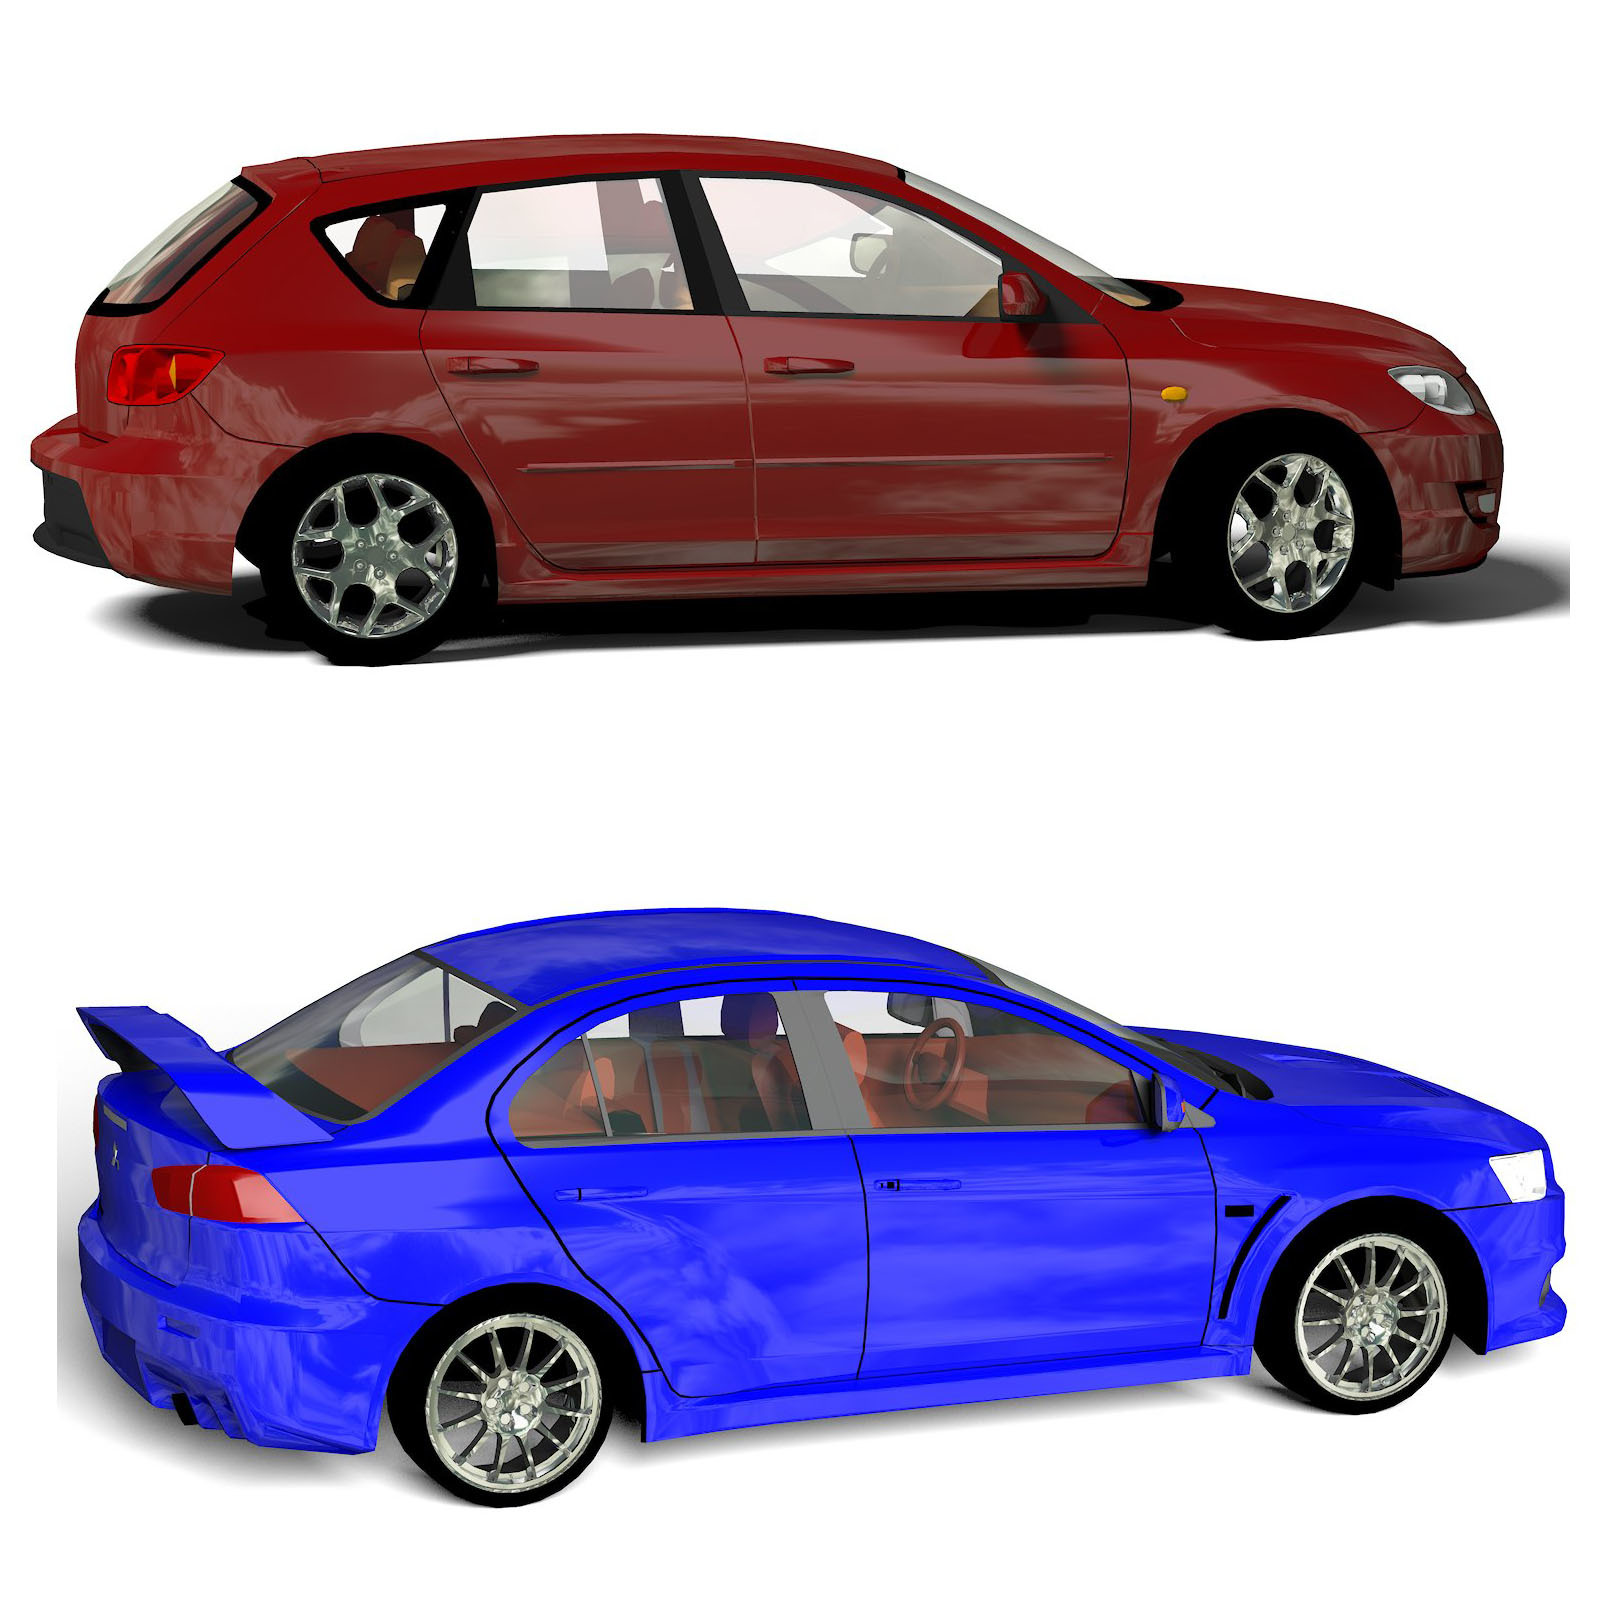 Budget Small Cars 3D Models Willyb53